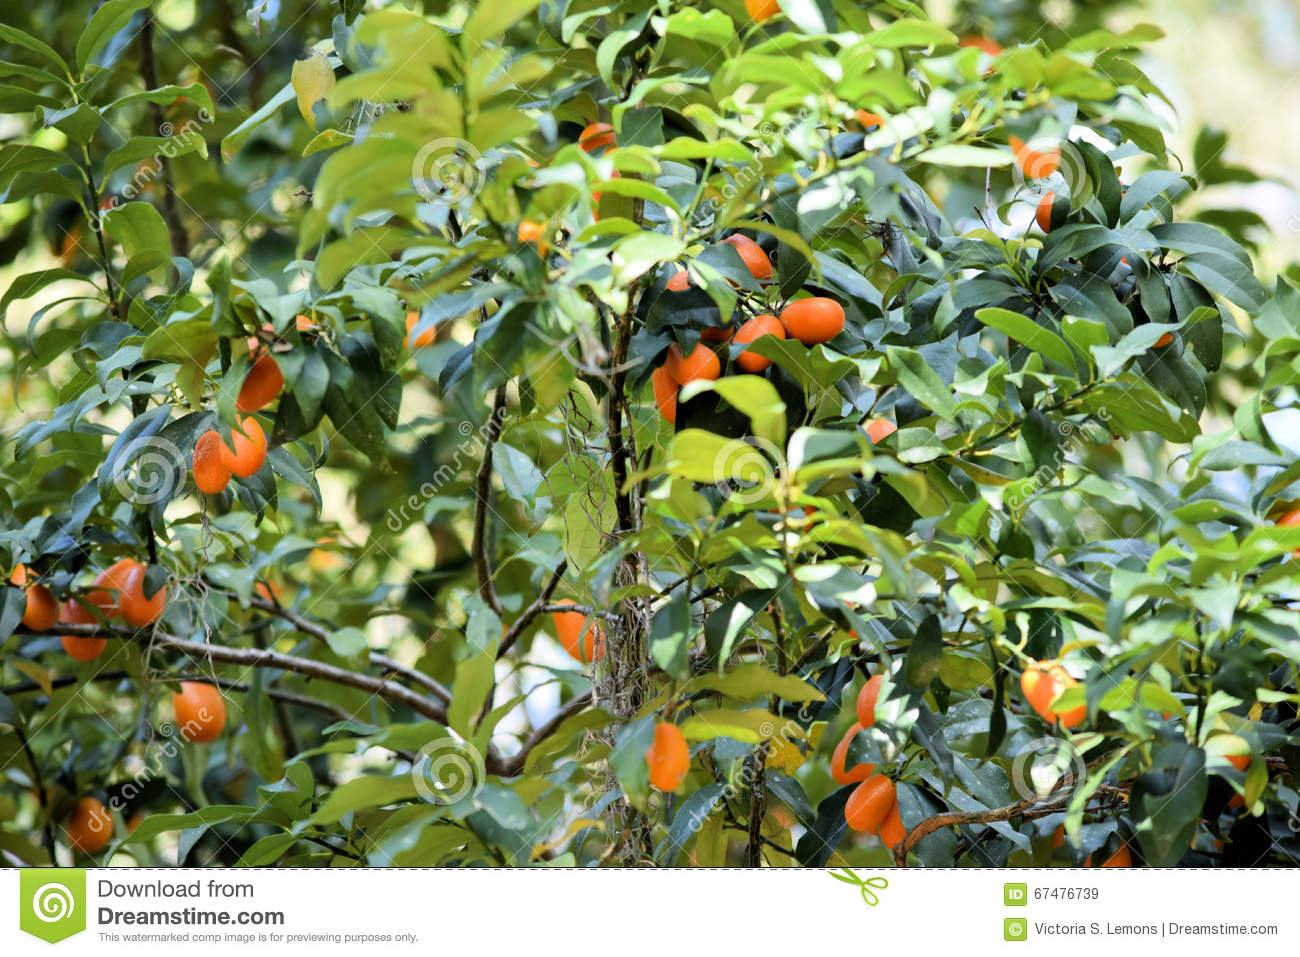 Growing Persimmon Tree With Fruit Stock Photo.